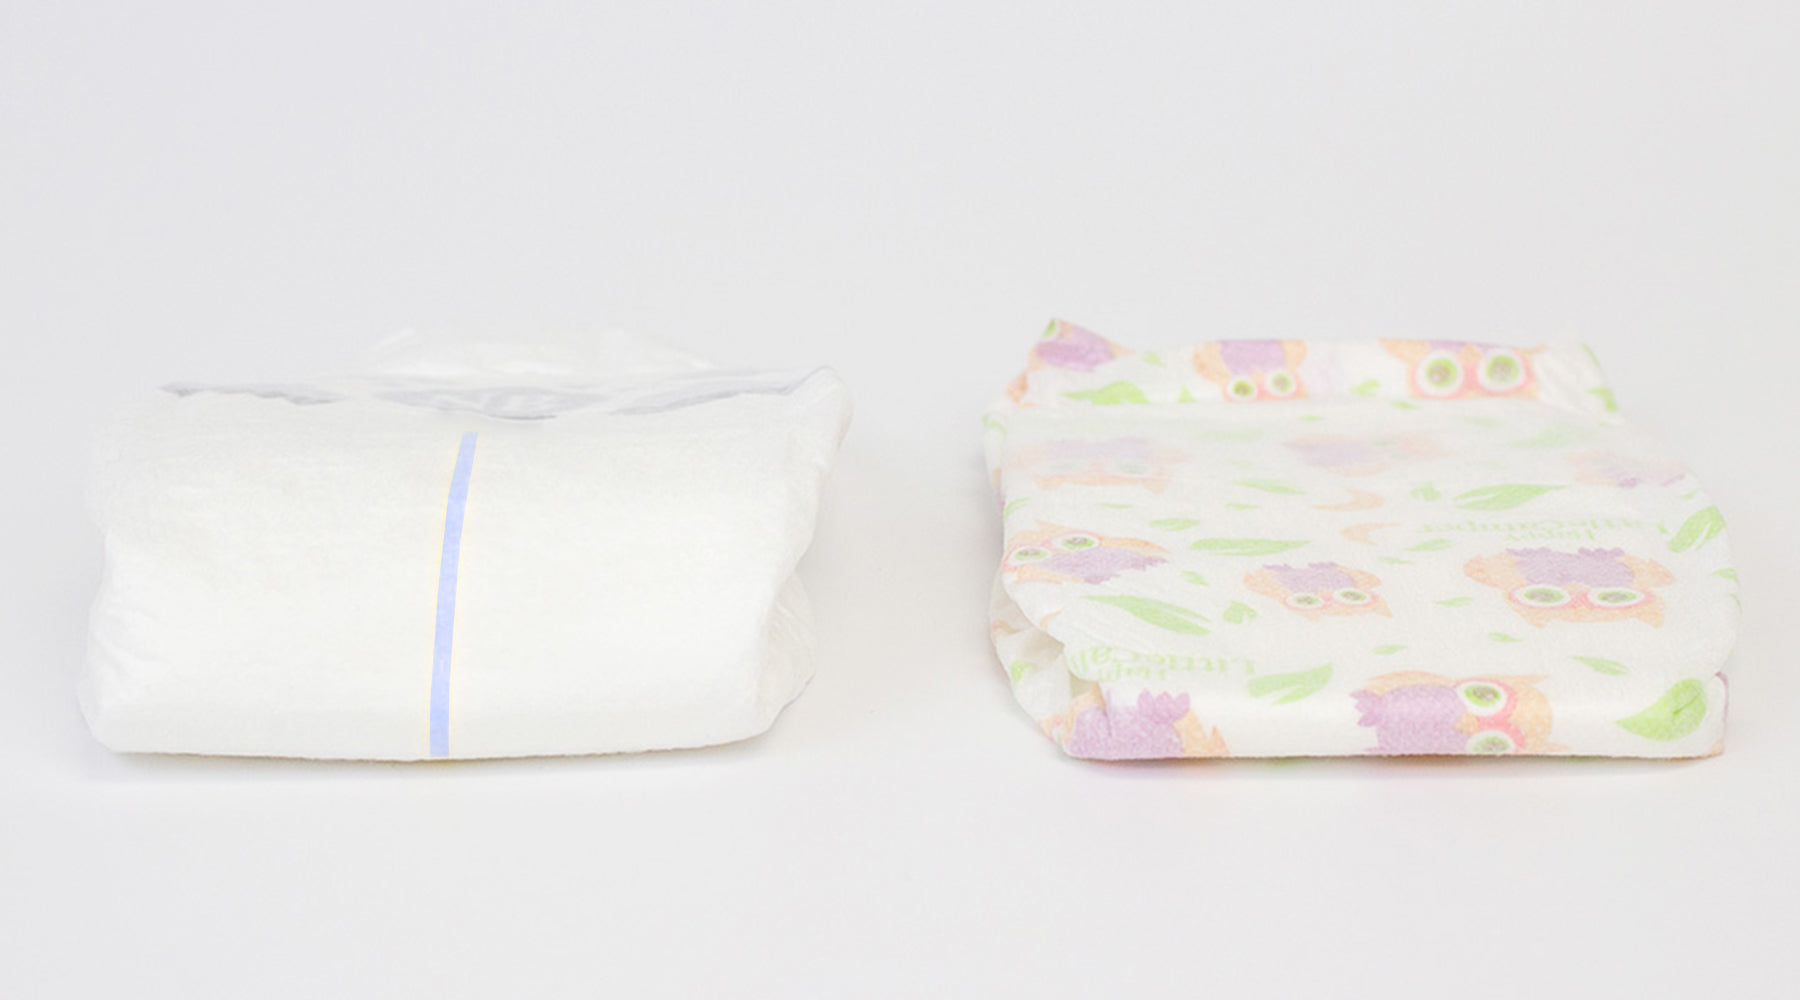 Happy little camper diaper and conventional diaper wetness indicator comparison